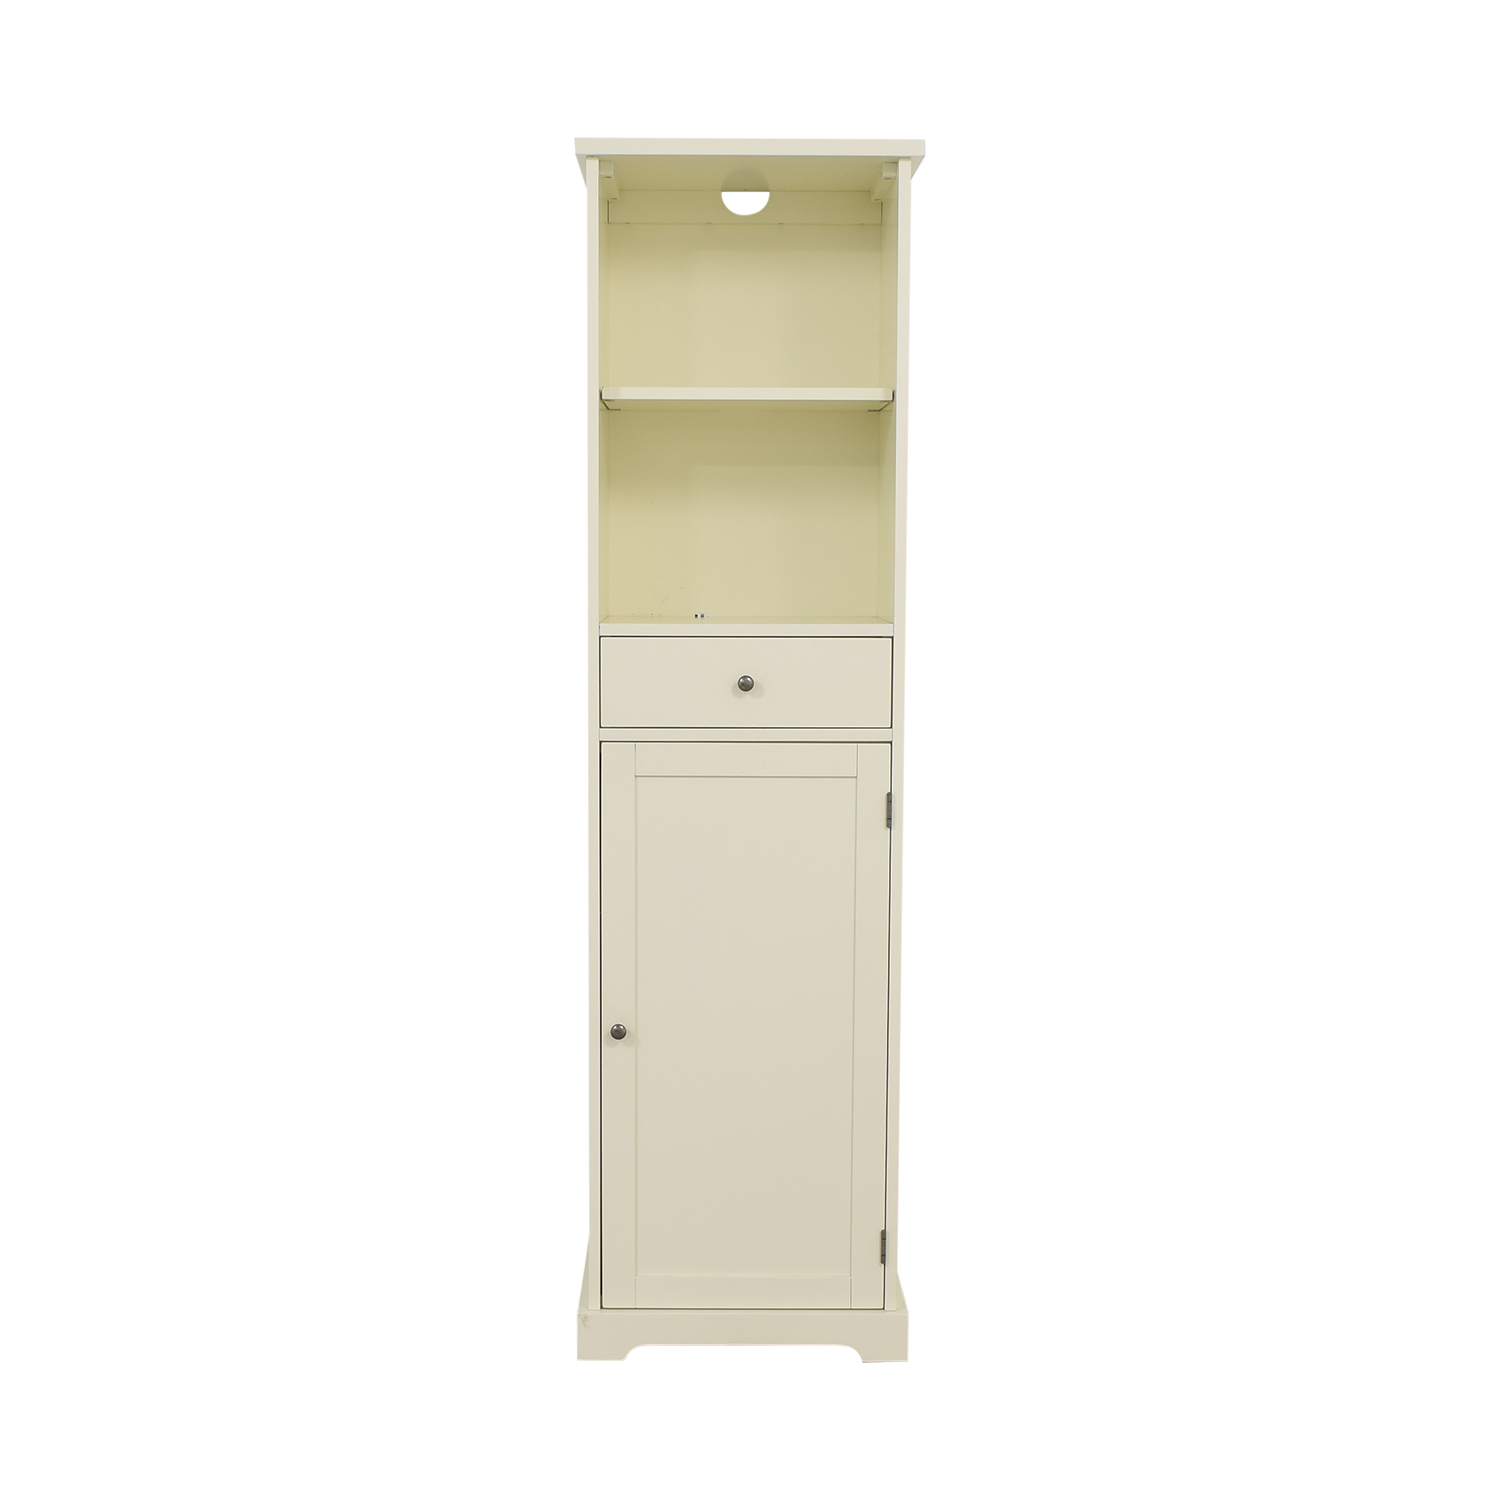 shop Pottery Barn Pottery Barn Samantha Storage Cabinet Tower online